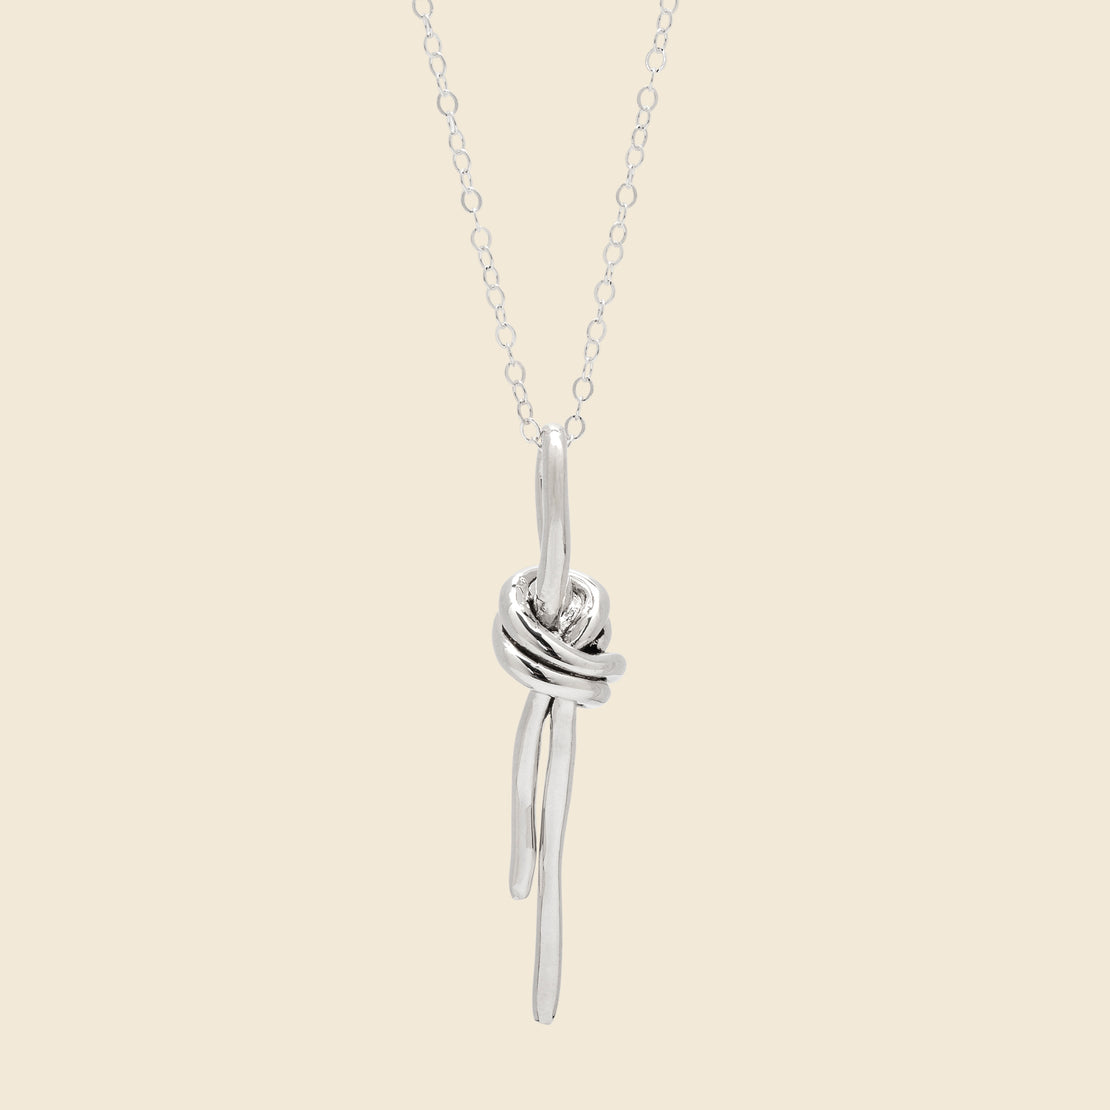 8.6.4 Design Knot Charm Necklace - Sterling Silver